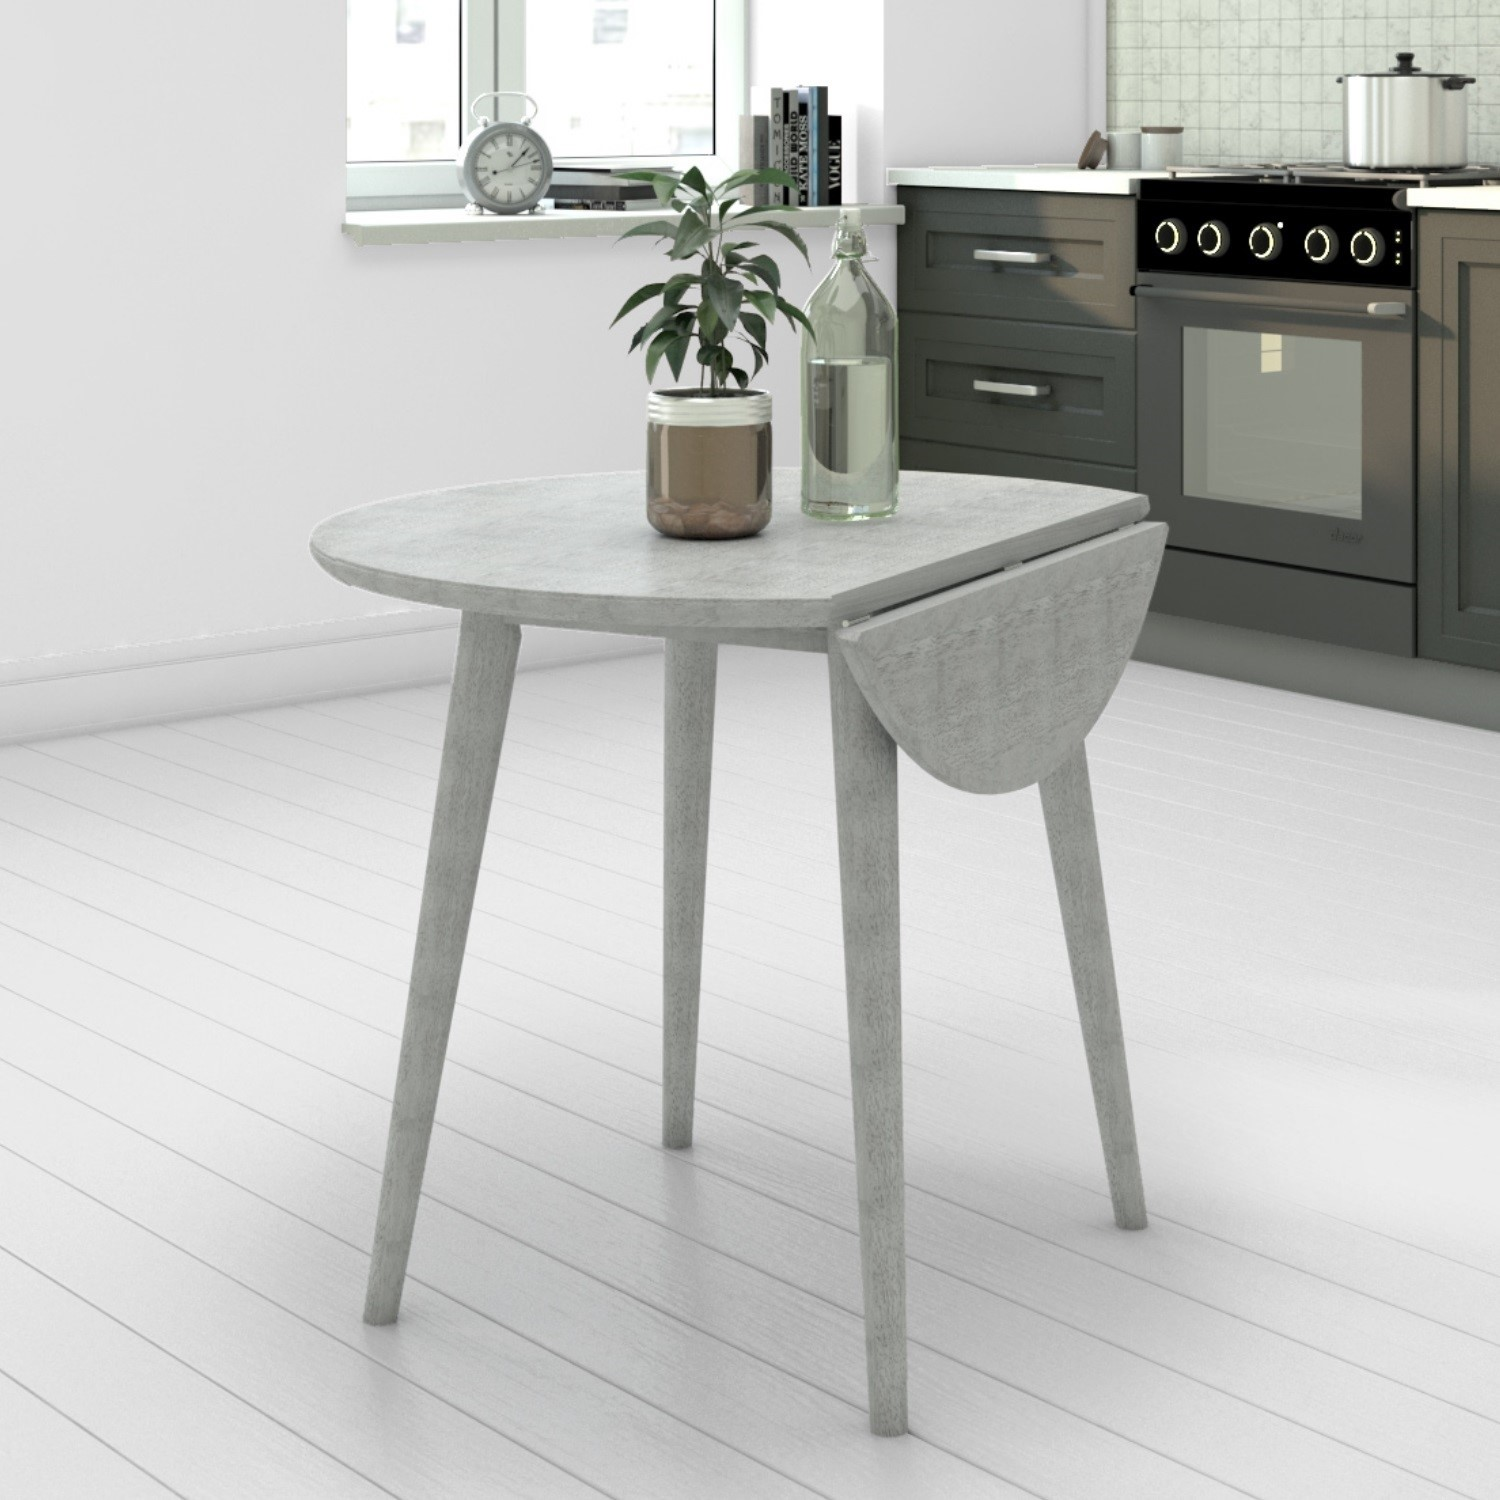 Grey Round Drop Leaf Dining Table - Seats 12 - Cami